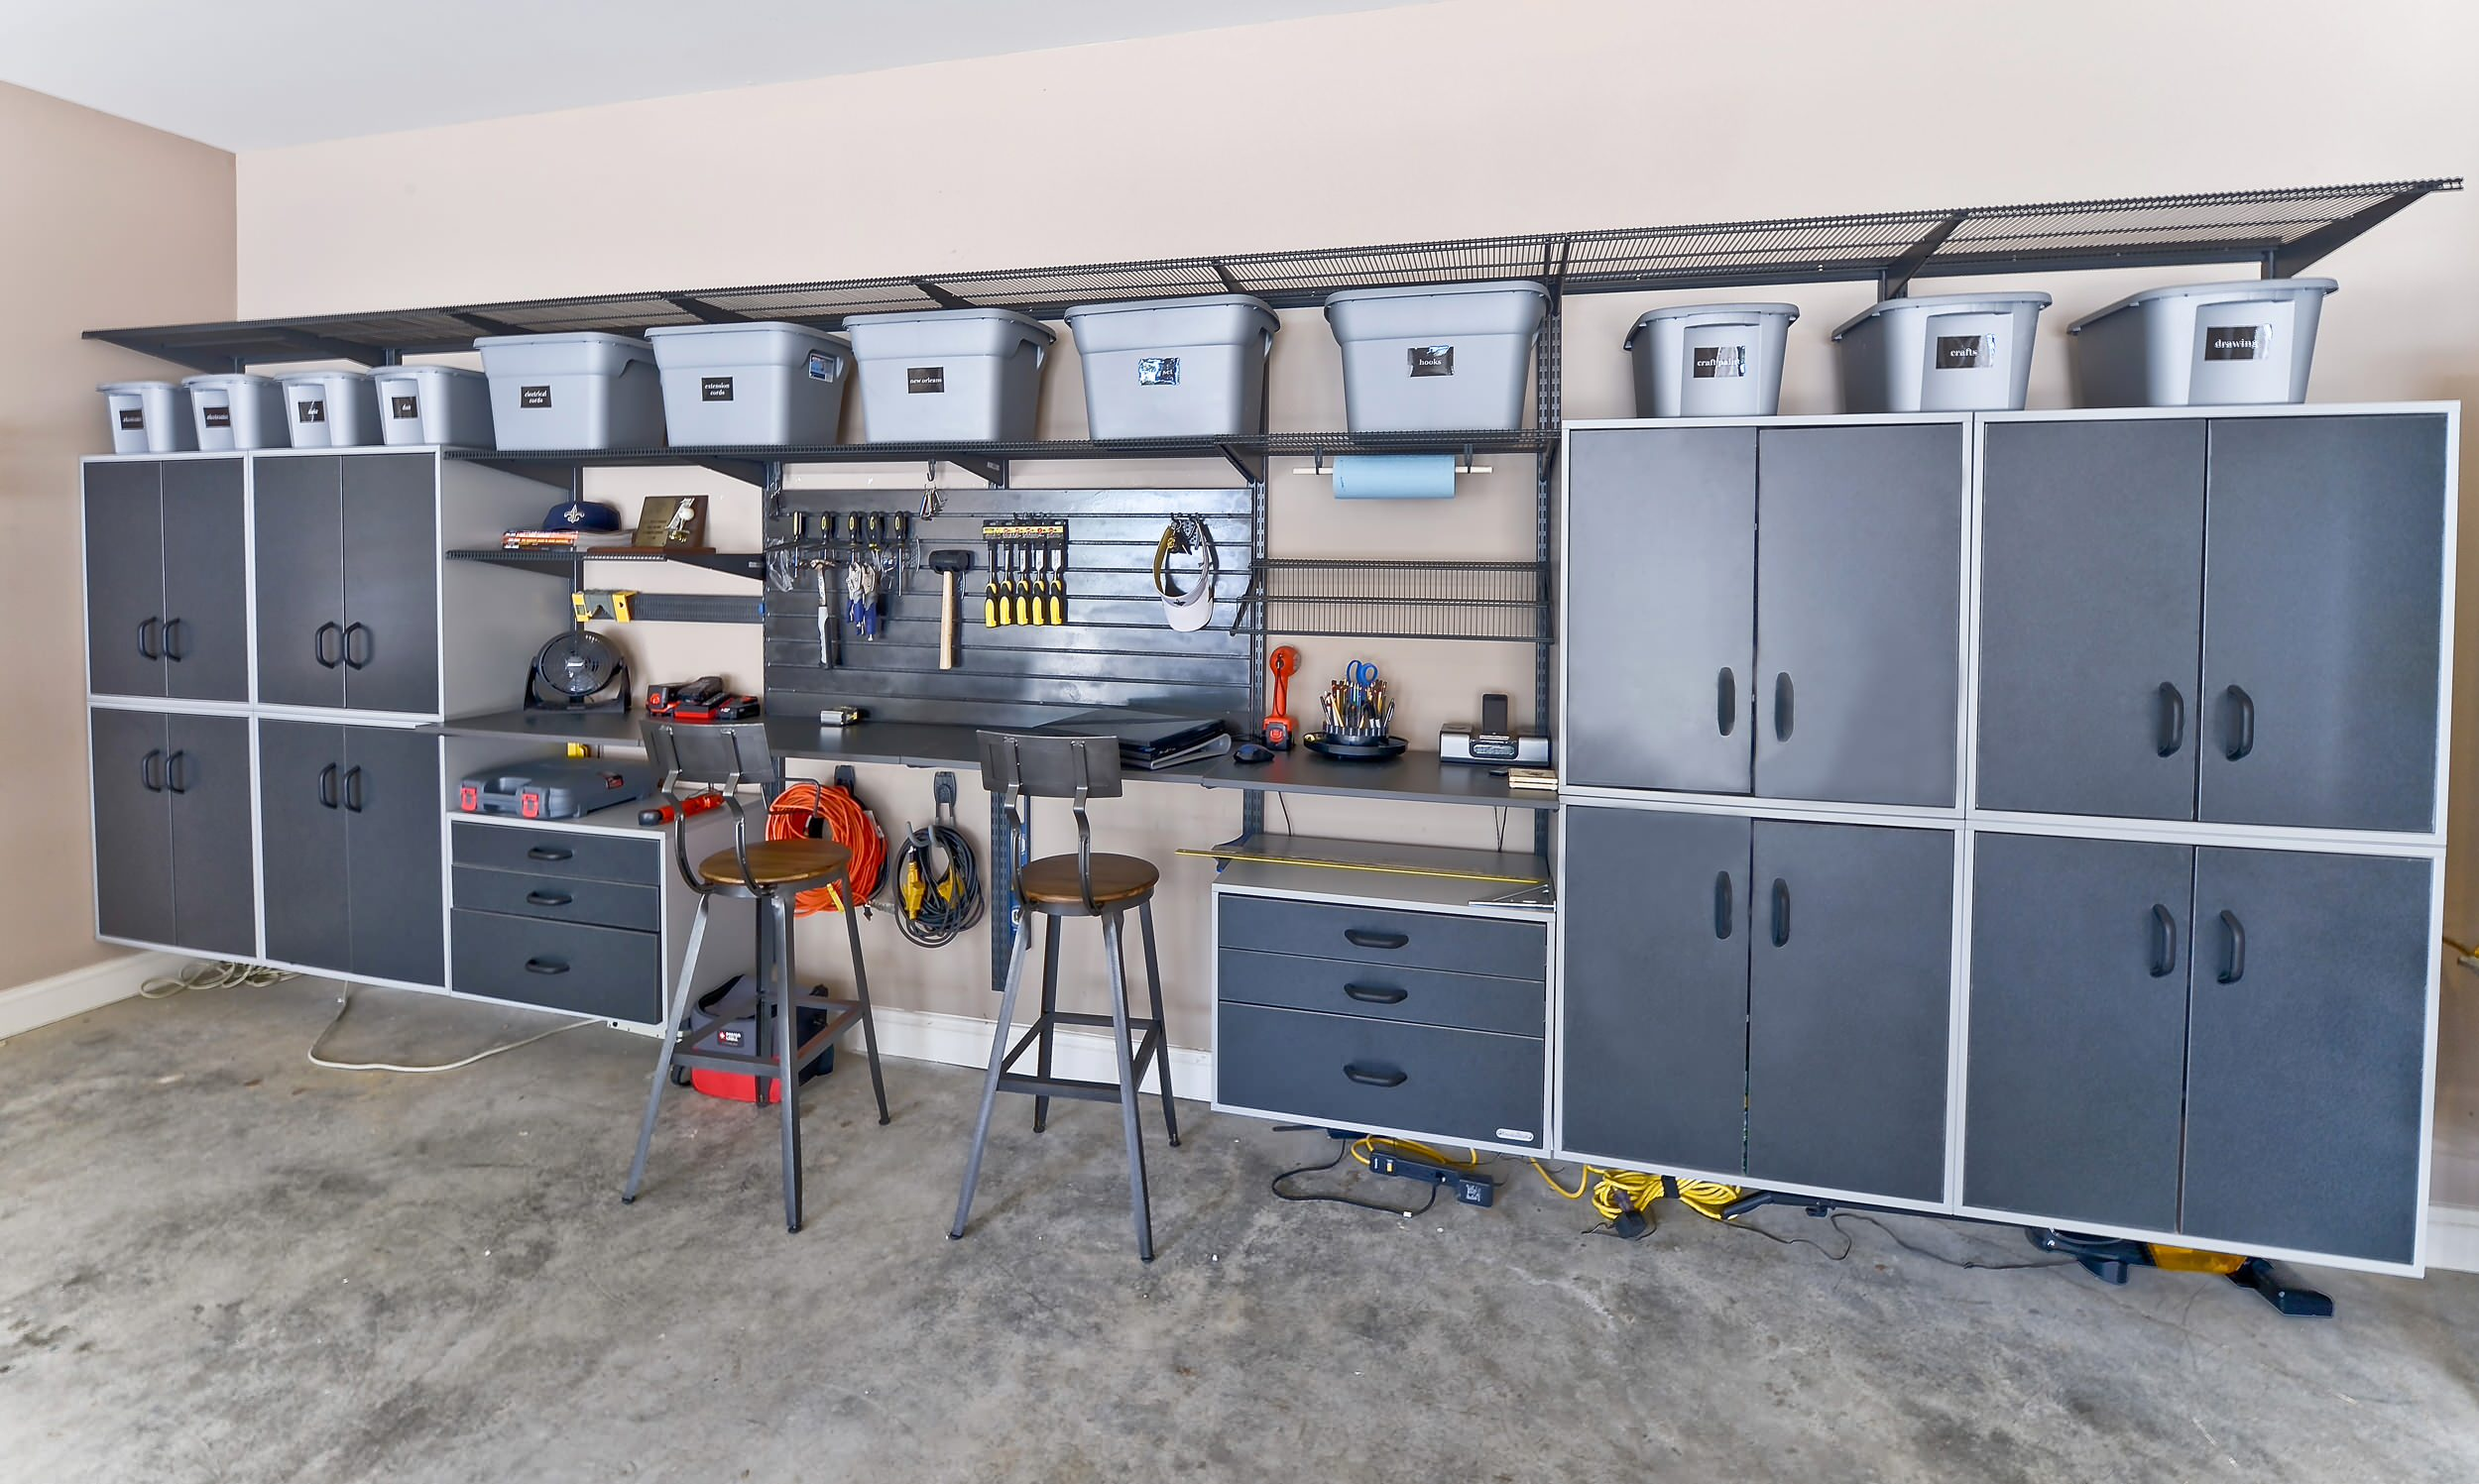 Concrete Floor For Contyemporary Garage And Shed Plus Counter Stools And  Floating Cabinets Also Garage Storage With Storage Bins Plus Storage System  And ...